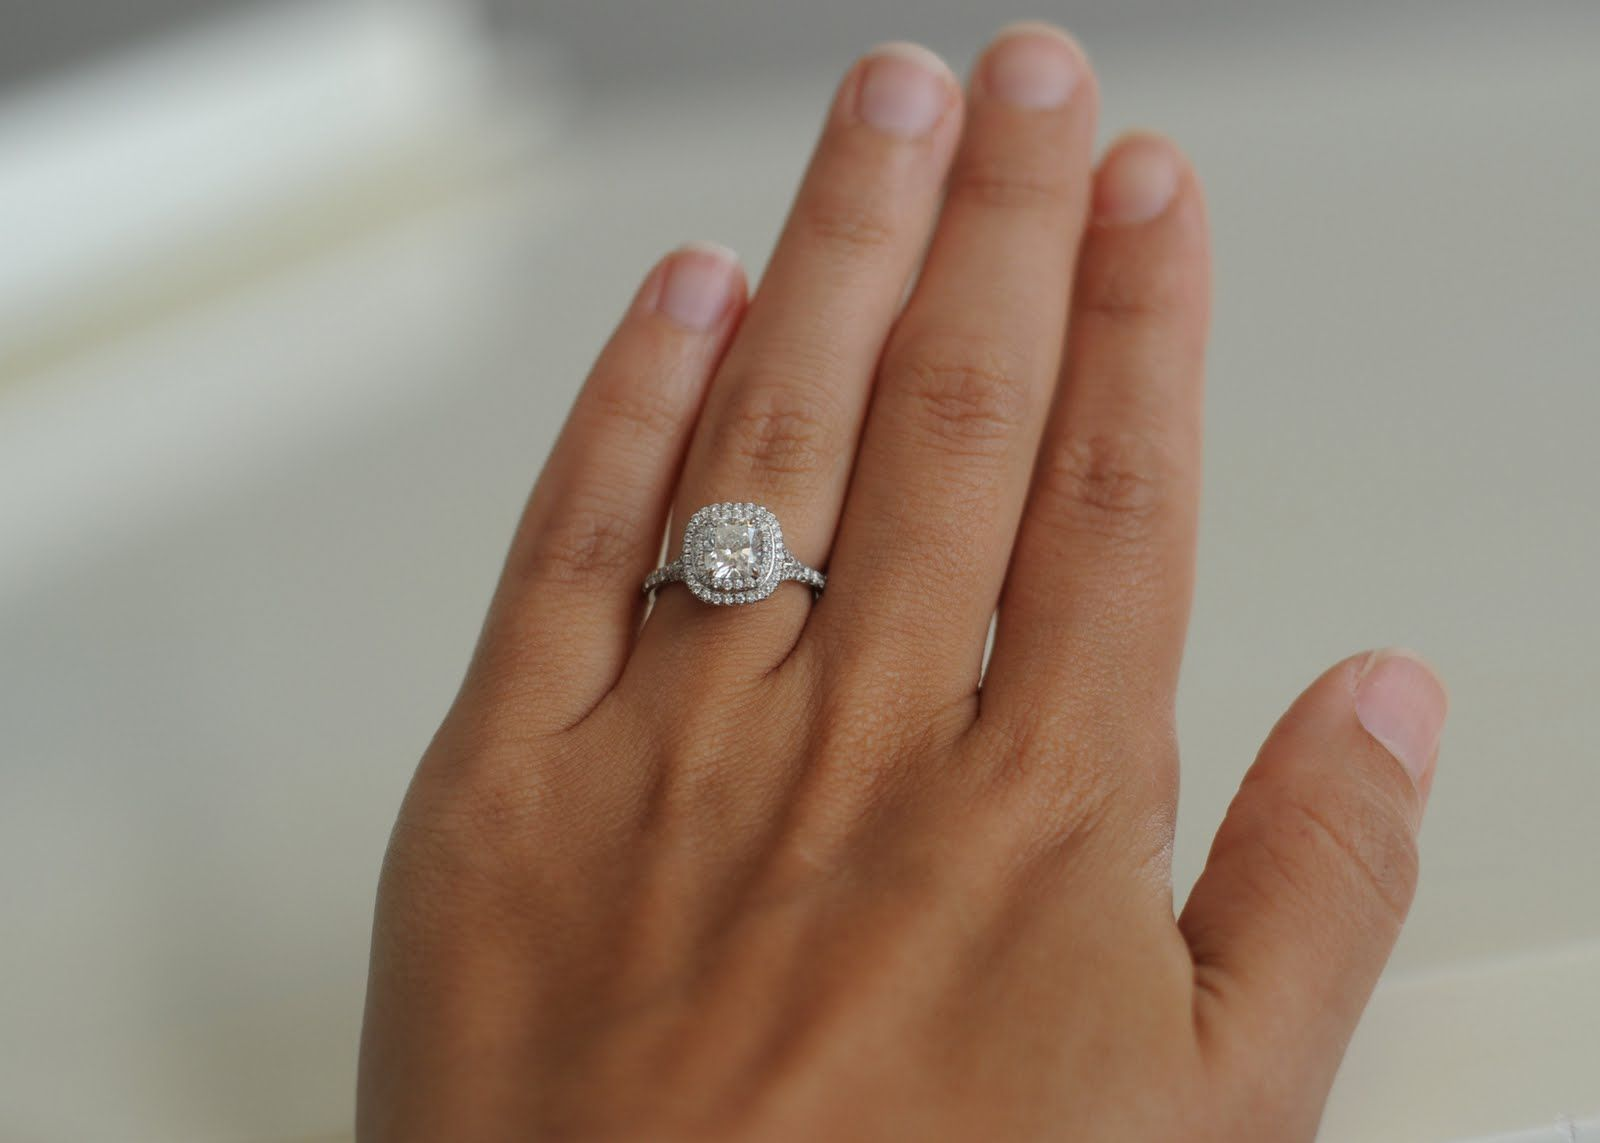 0a6794488 Tiffany Soleste E-Ring. I tried this beauty on in July when I went to  Orlando with my boyfriend (not my hand). I've never been that breathless  and ...